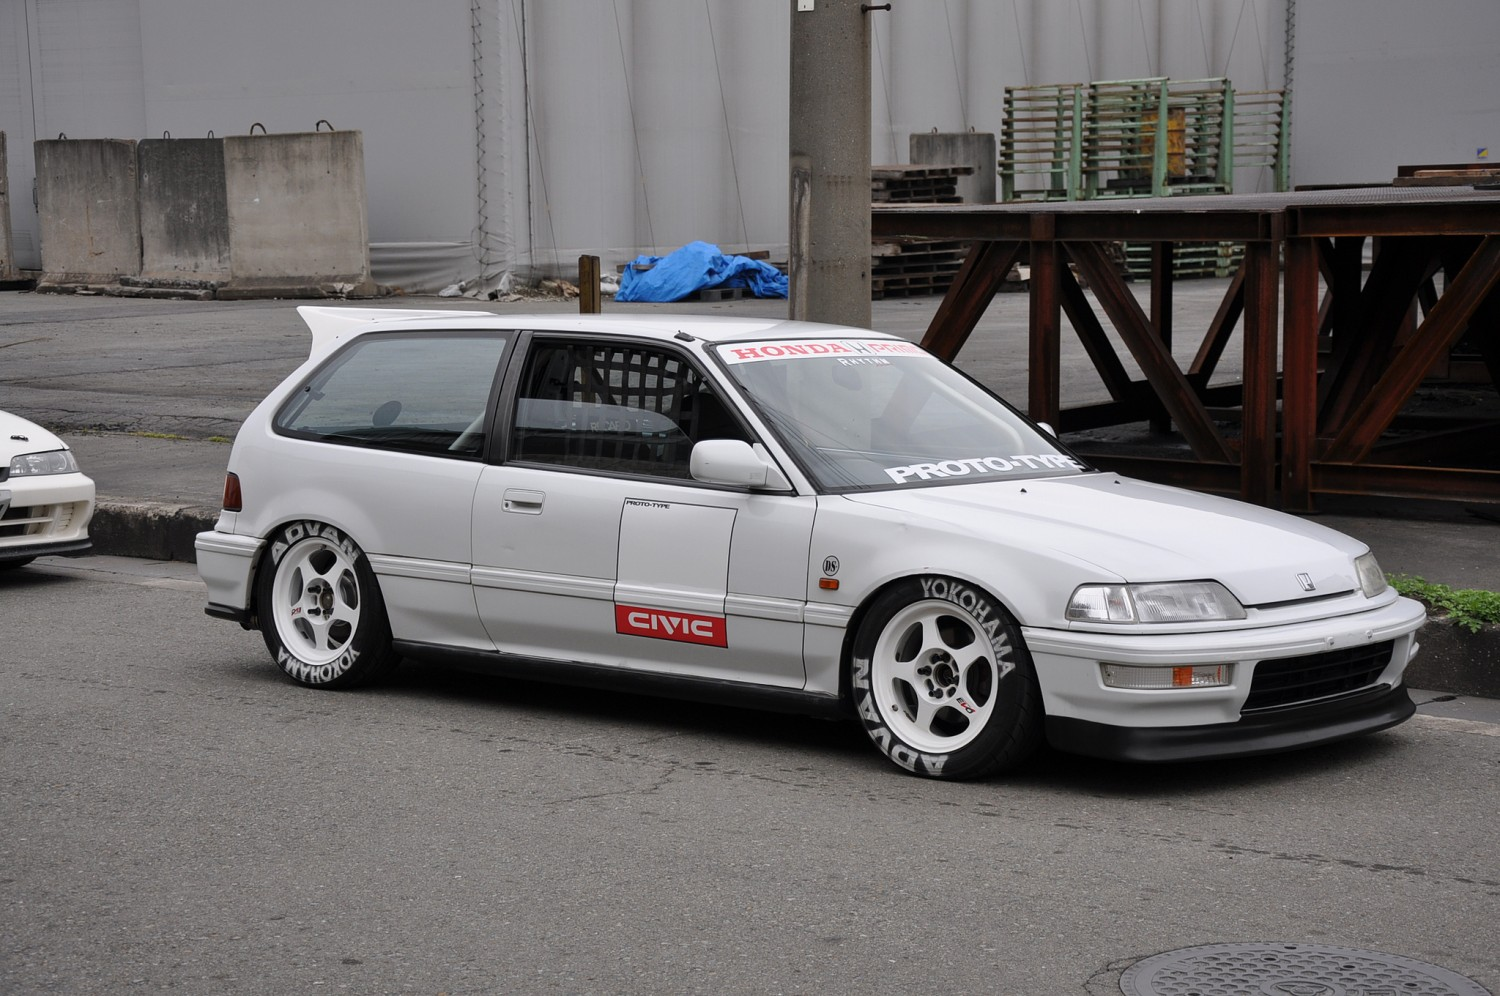 Civic Hatch Stancenation Form Gt Function